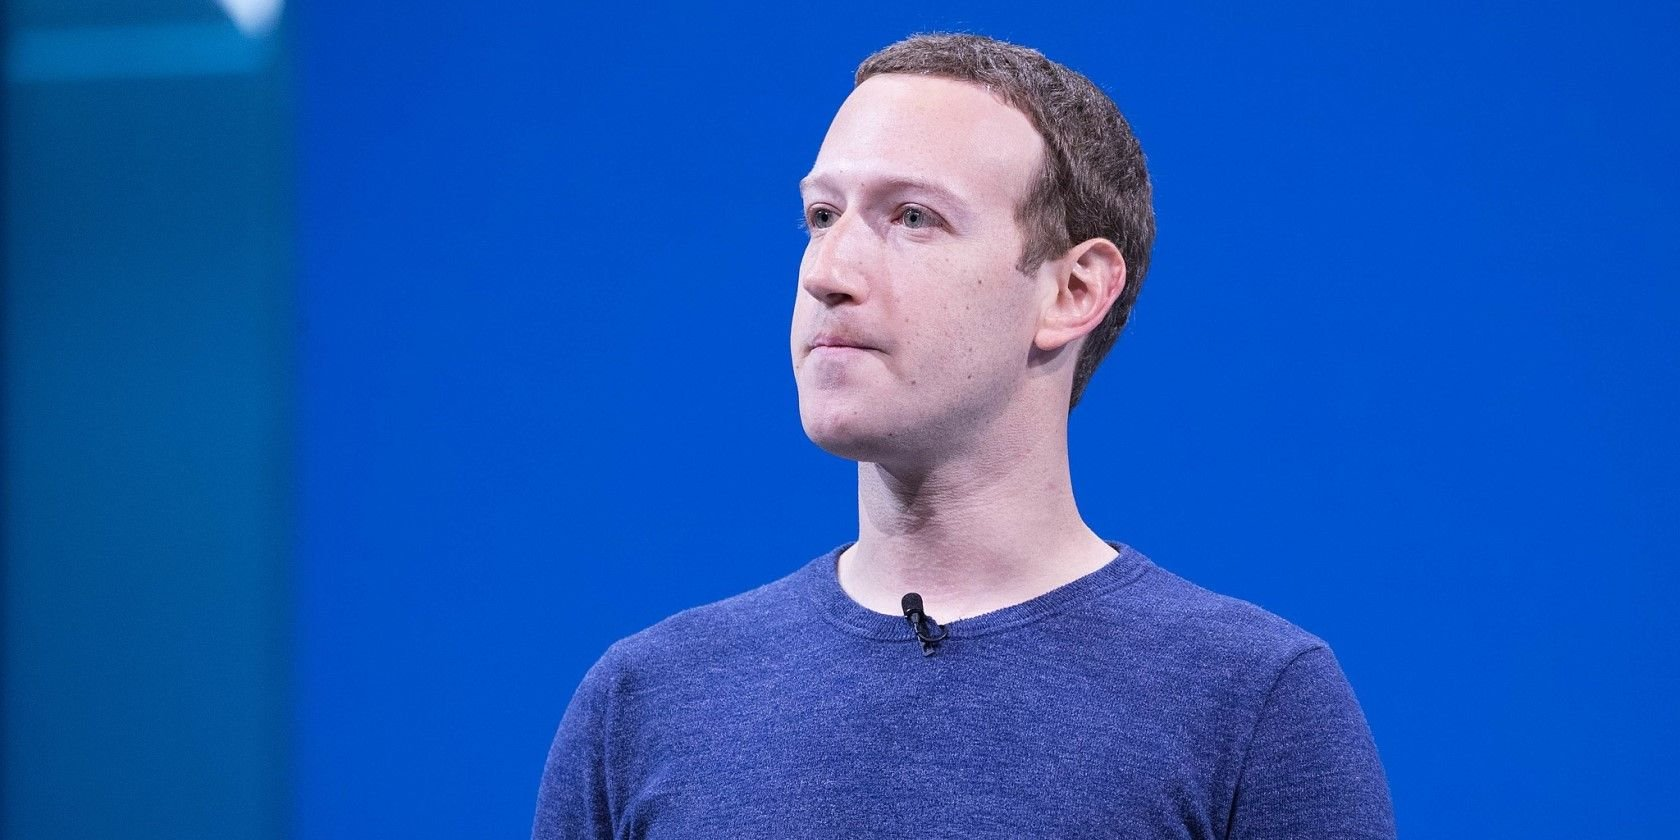 The Top 6 Most Polarizing Figures in Tech